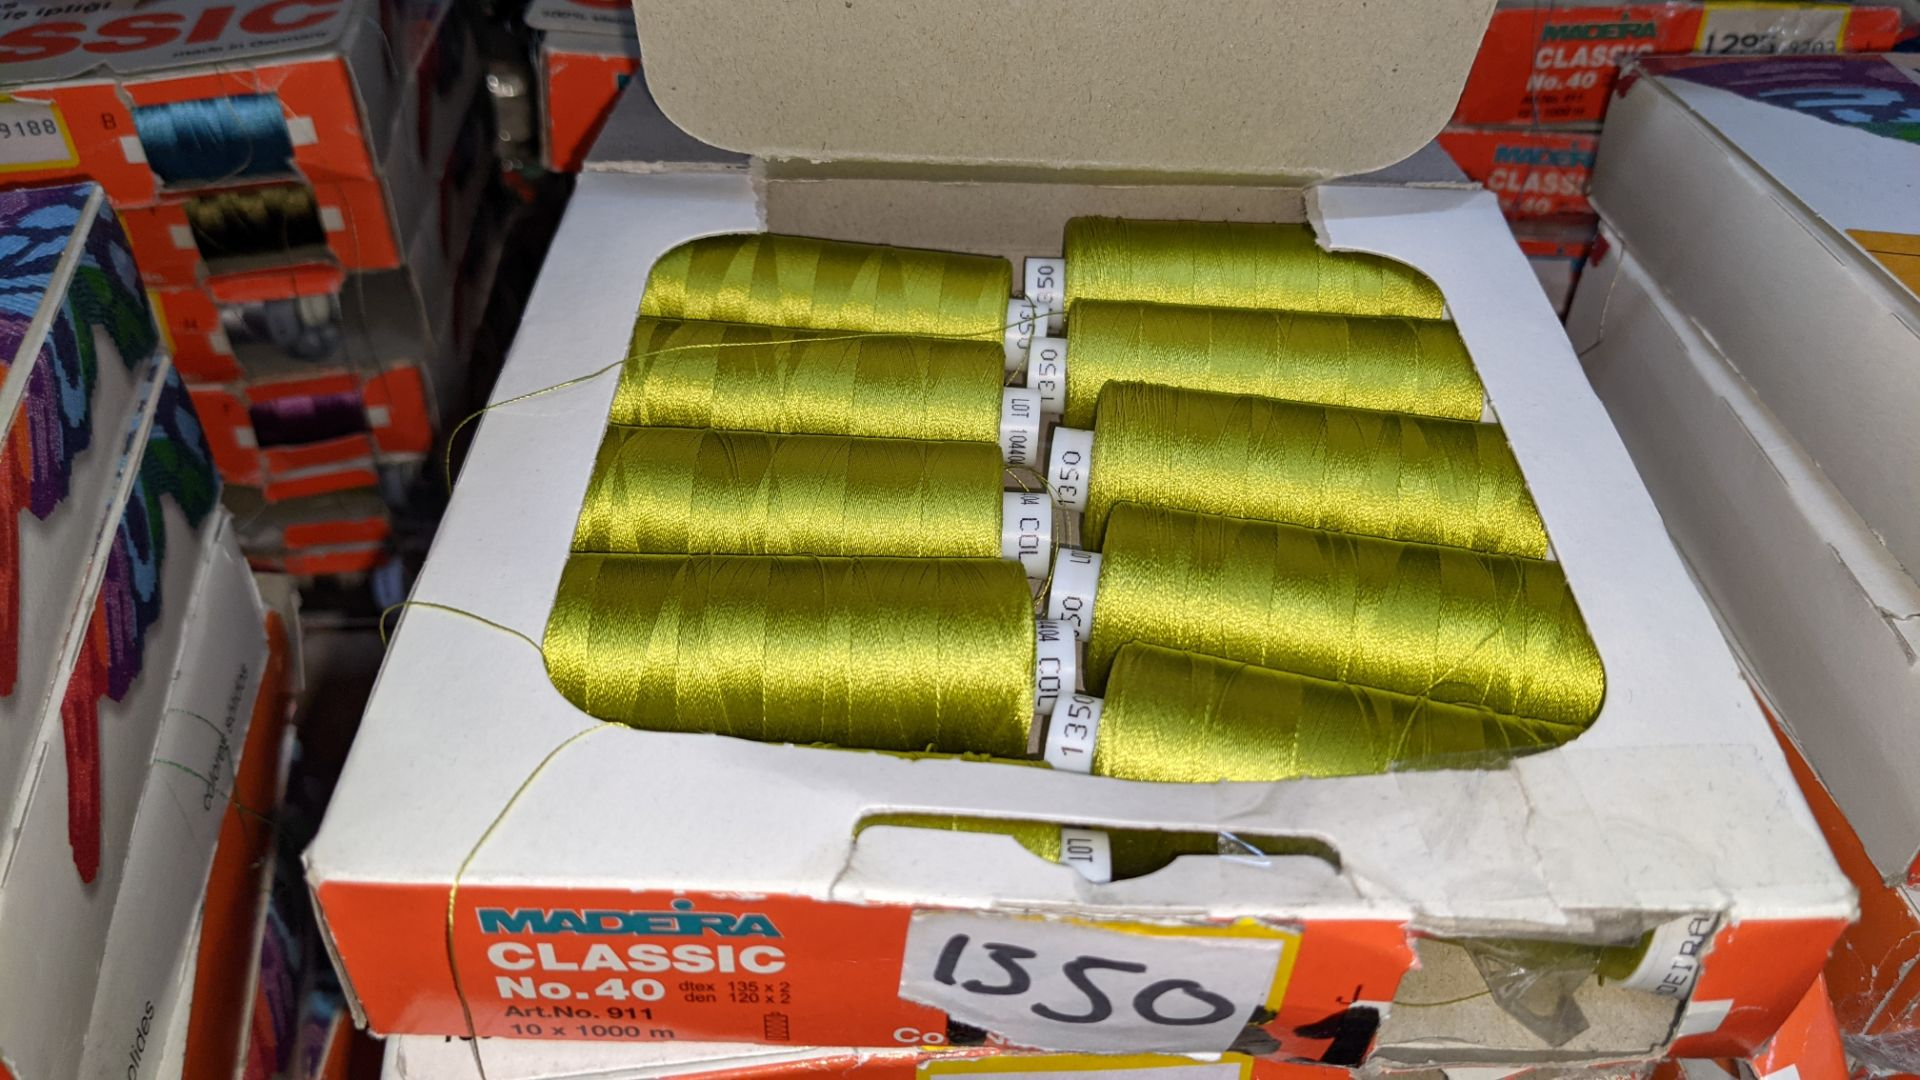 18 assorted boxes of Madeira Classic No. 40 embroidery rayon thread - Image 6 of 8